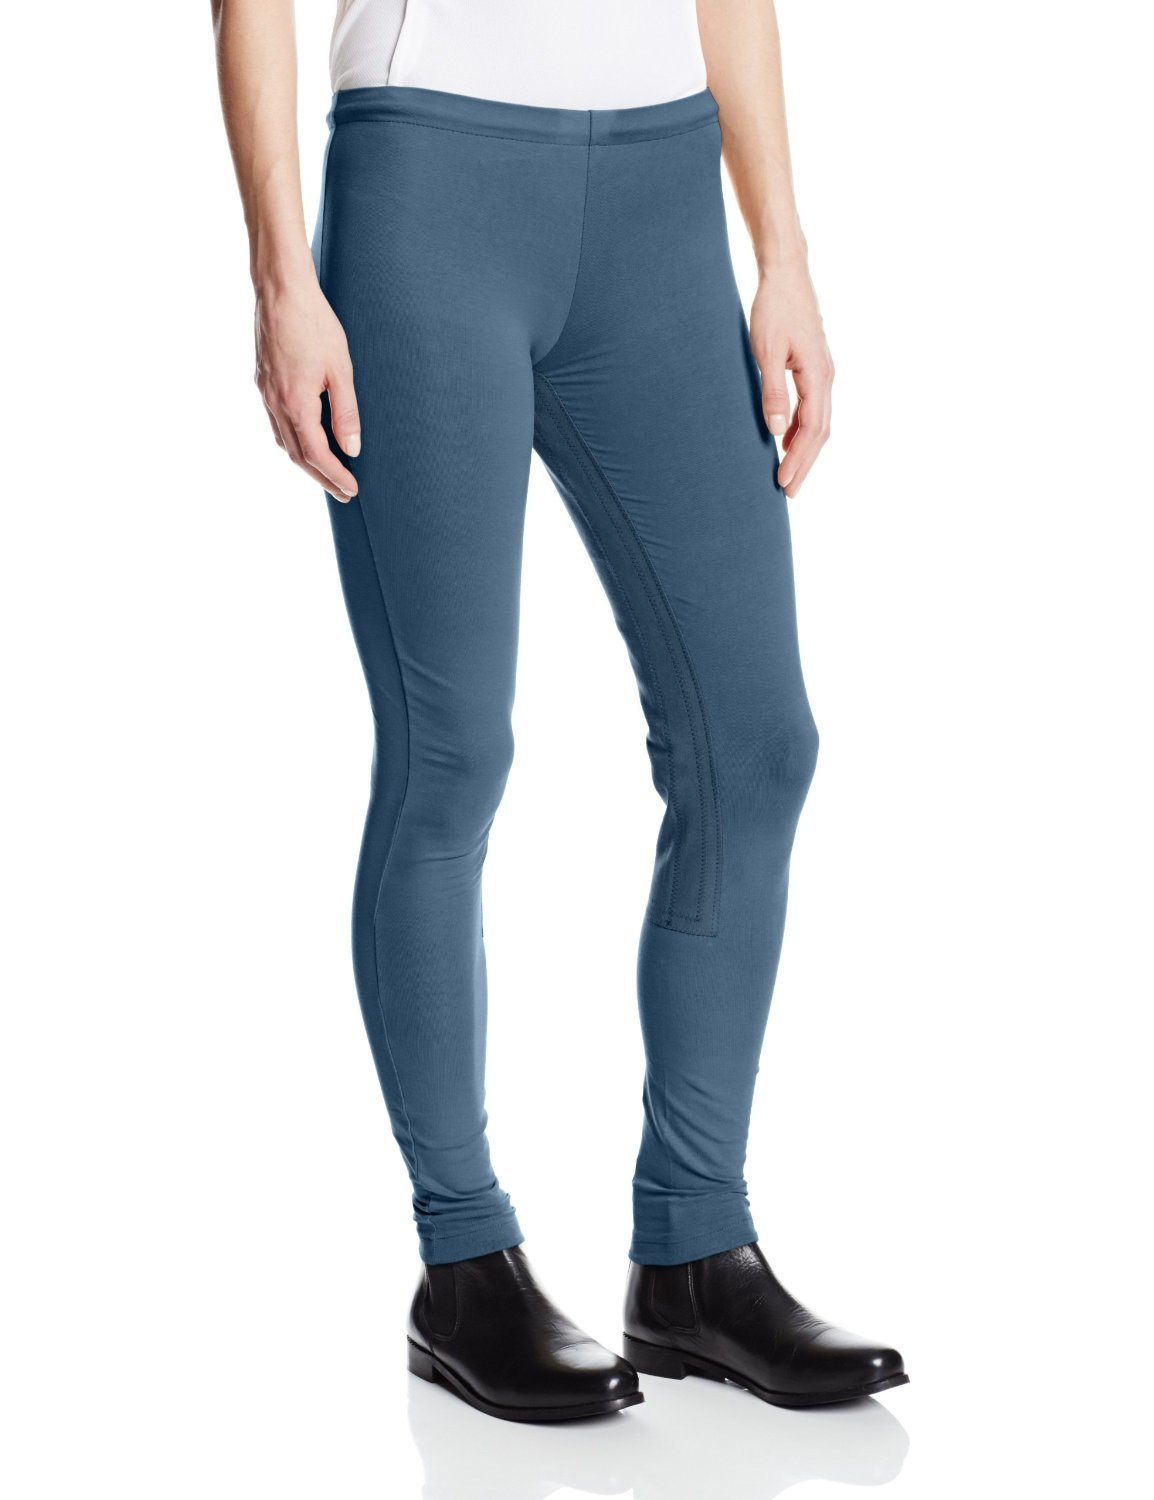 Devon-Aire Women's Versailles Full Sleeve Tights, Sea Blue, X-Small